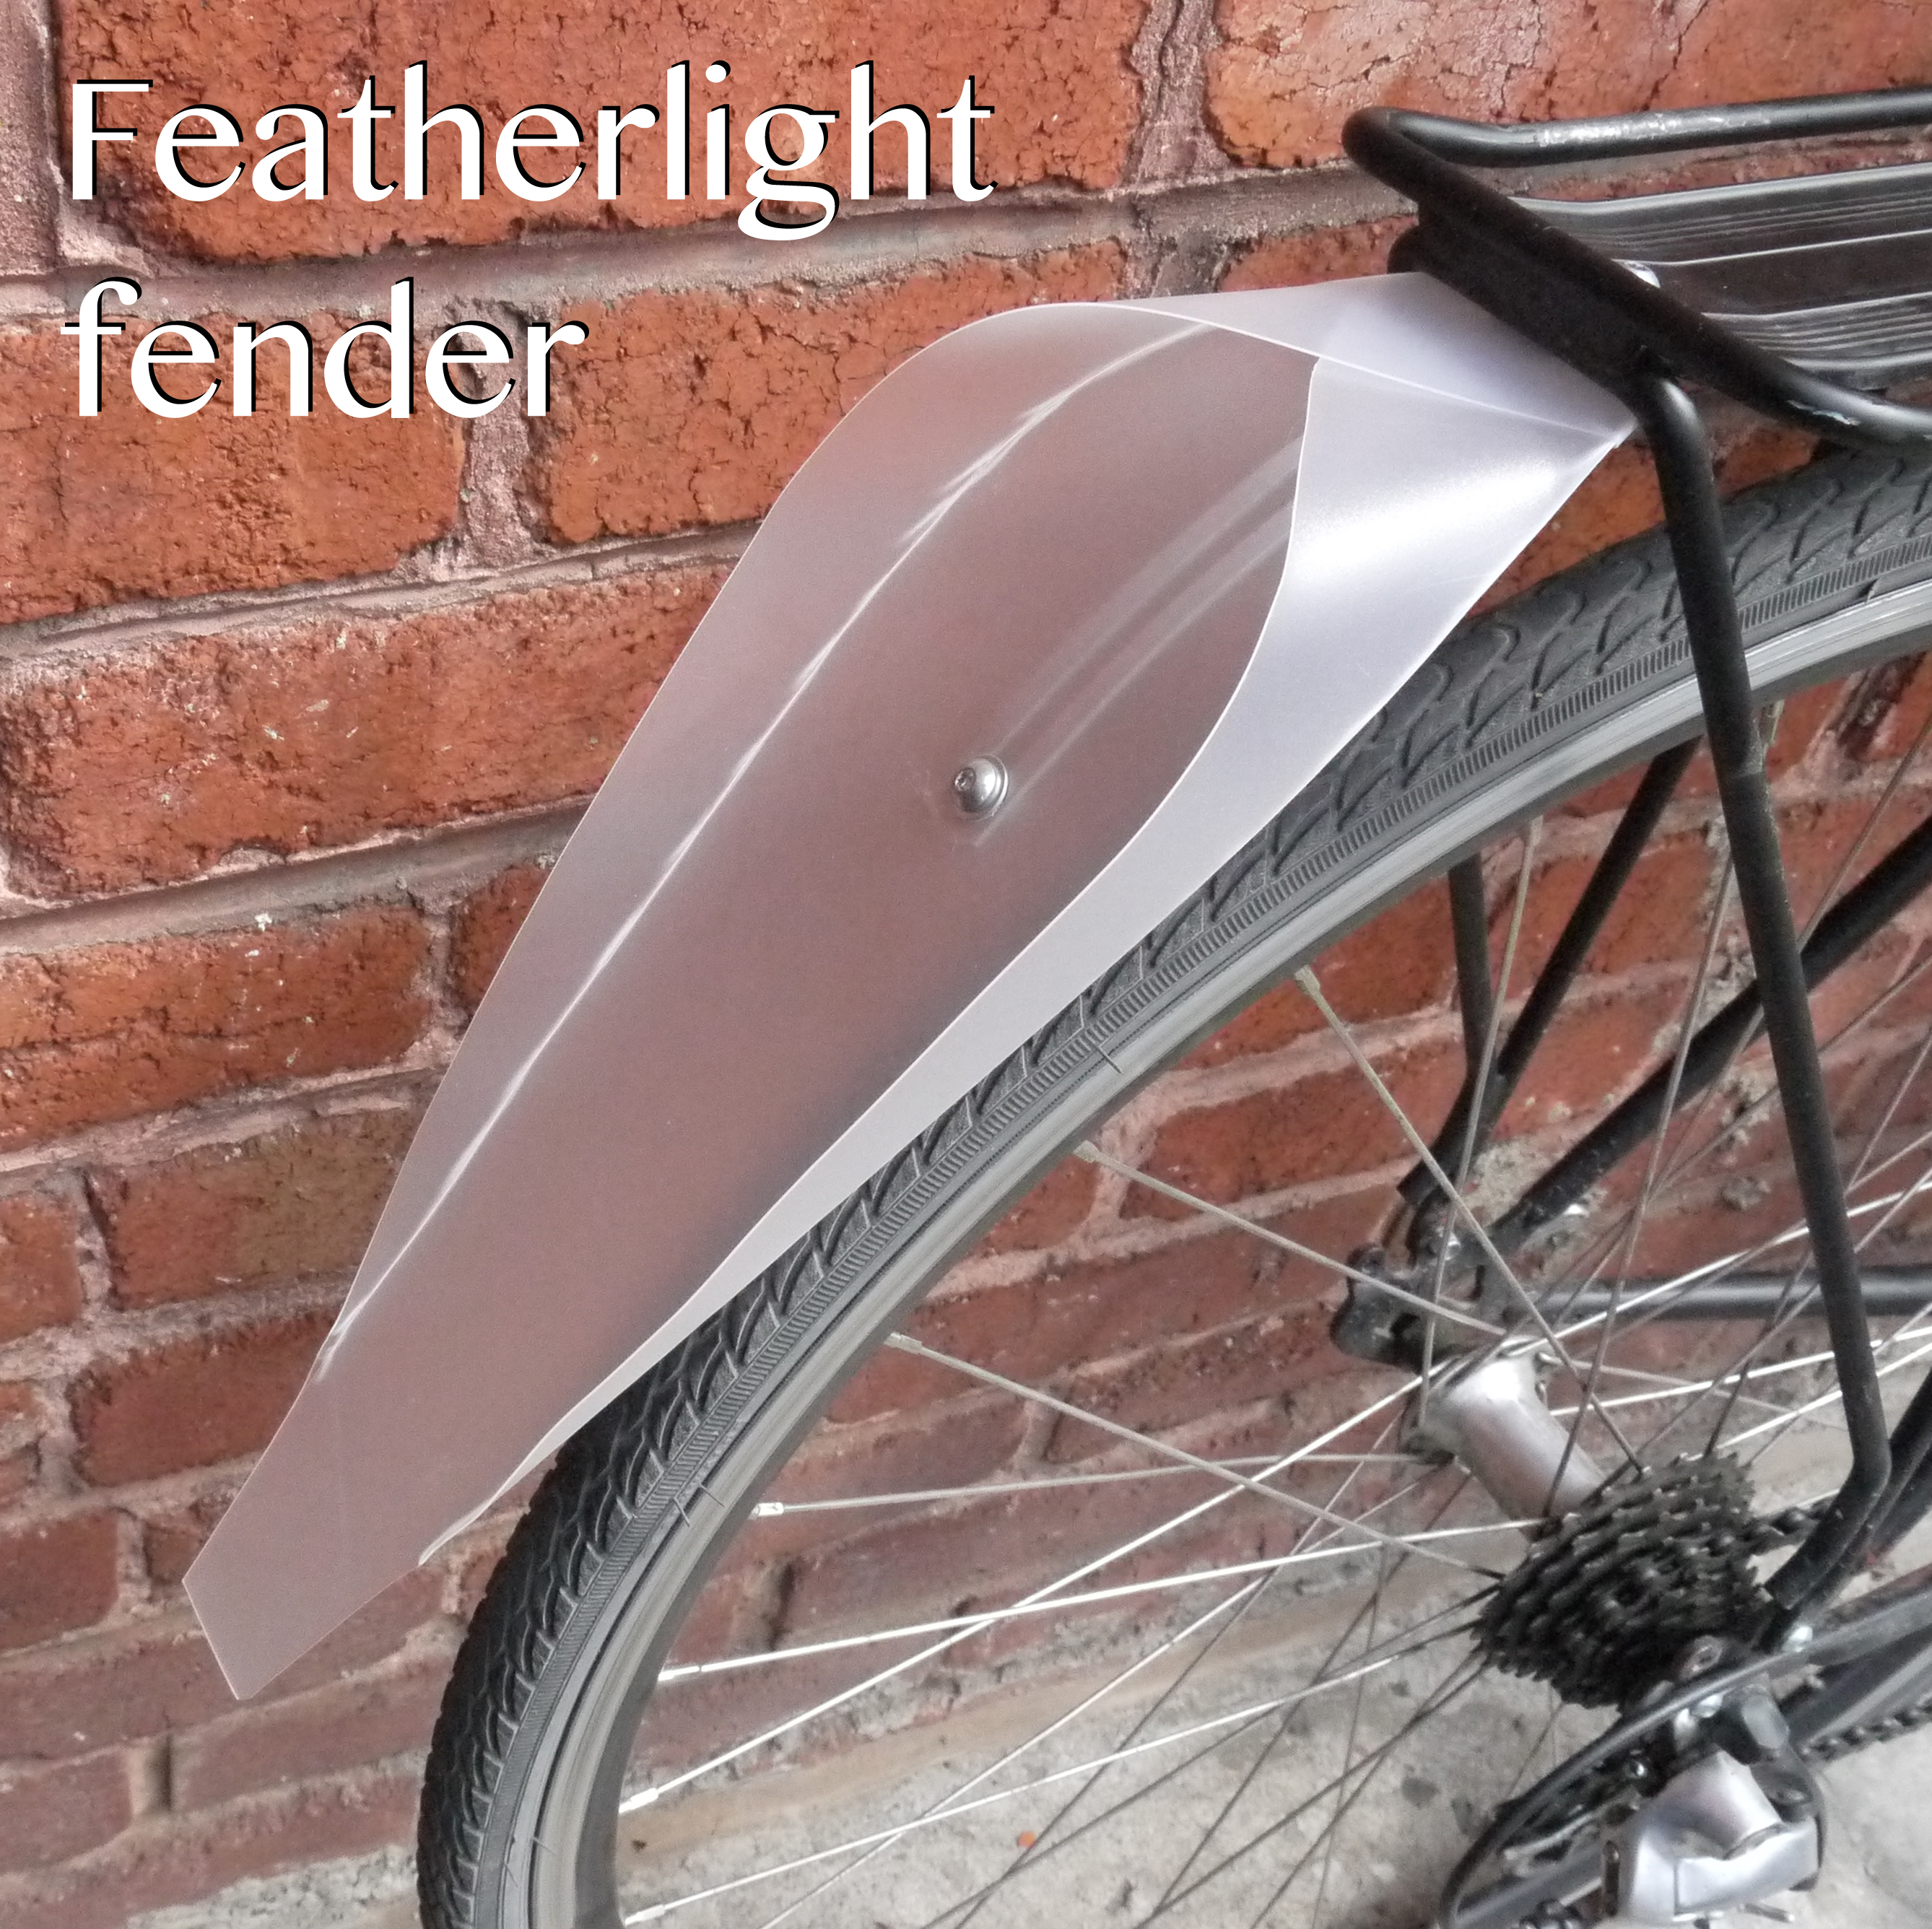 Featherlight fender